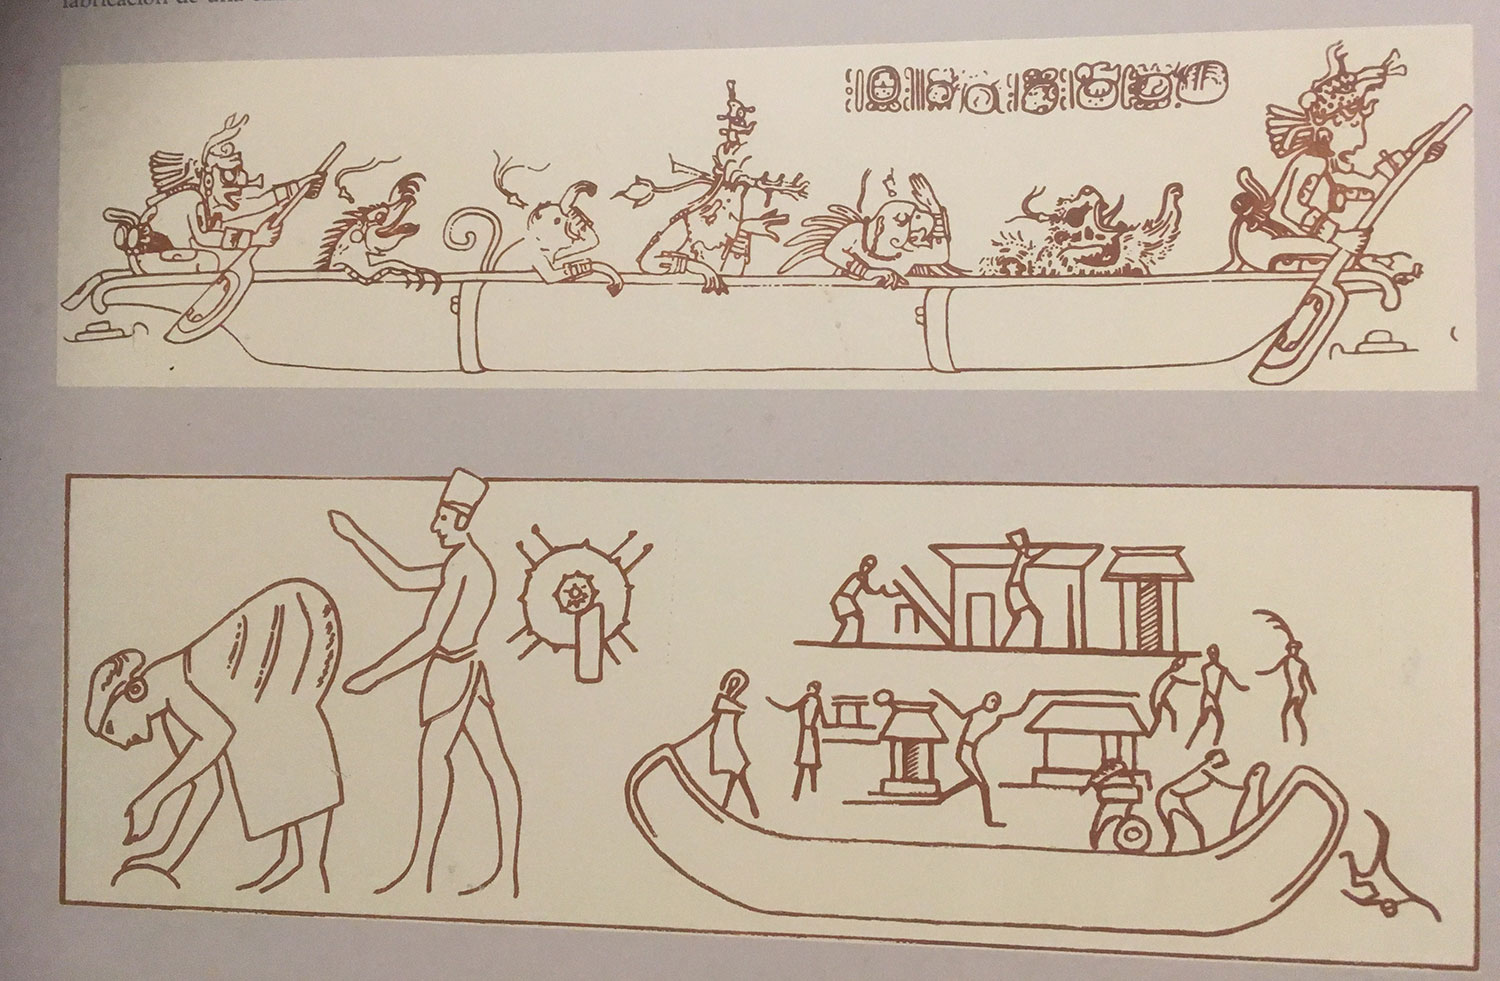 A canoe drawing with the Maya Paddler Gods (found at Tikal).